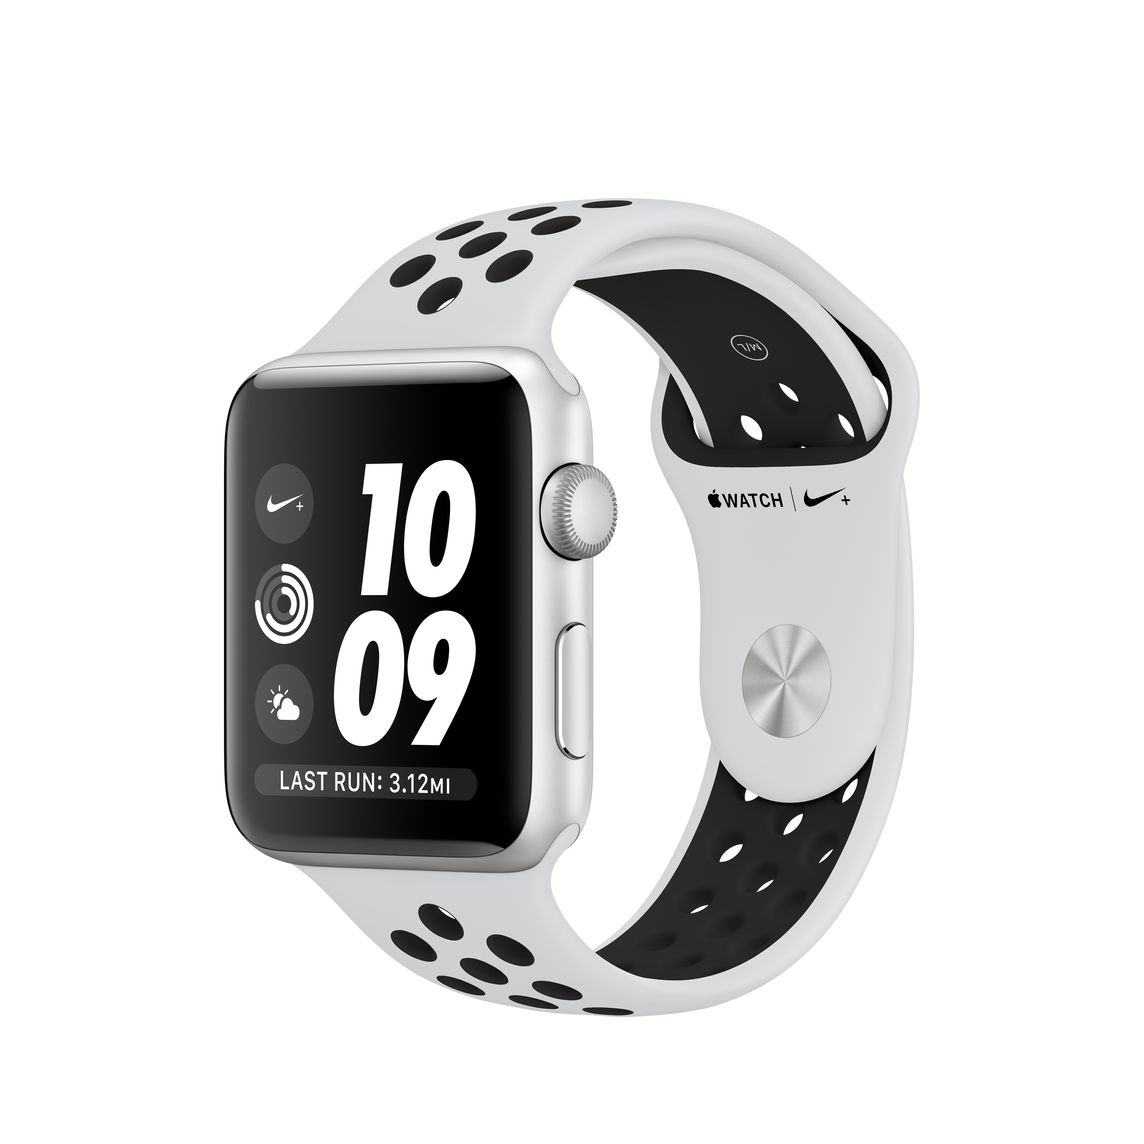 Refurbished Apple Watch Series 3 GPS, 42mm Silver Aluminum Case